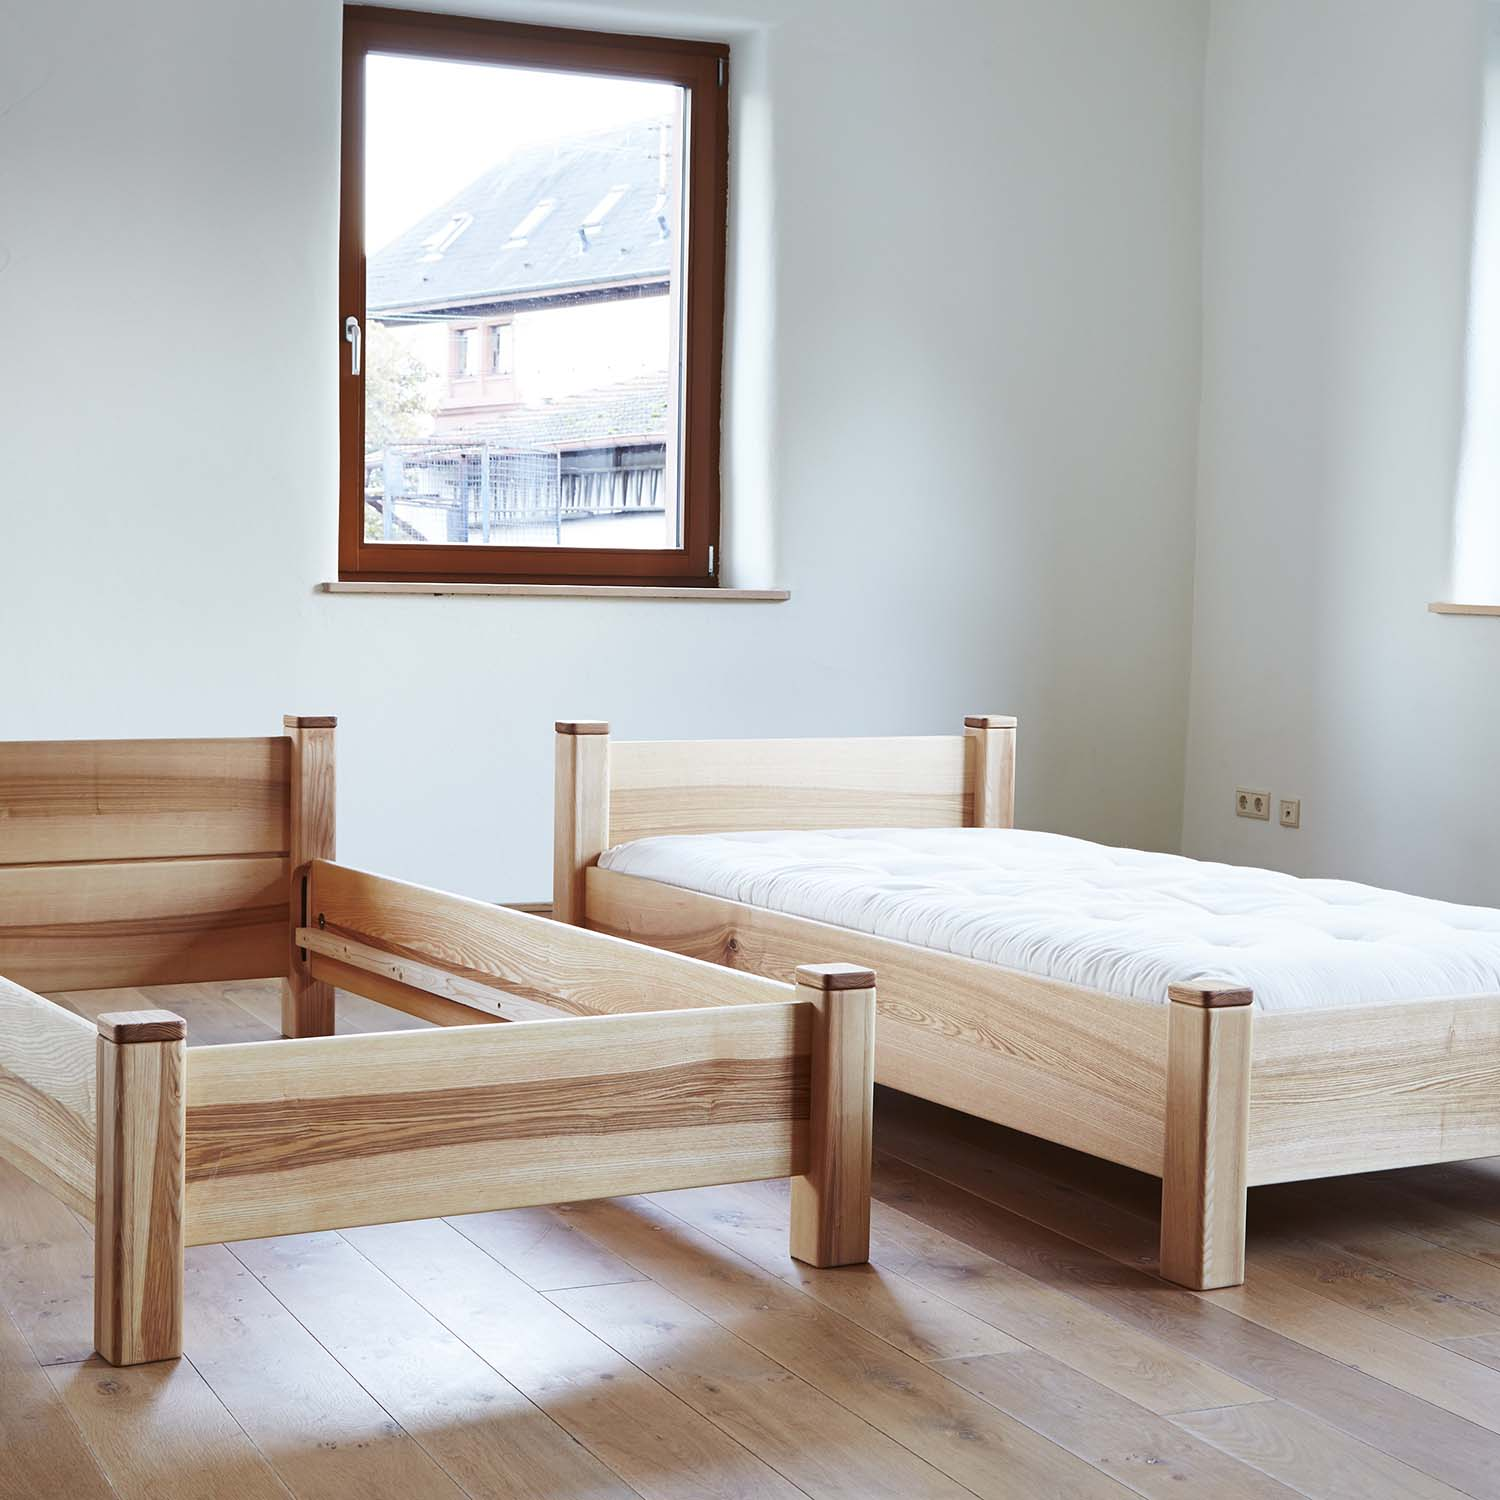 m bel aus massivholz in neustadt pfalz landau tischlerei baum natur. Black Bedroom Furniture Sets. Home Design Ideas